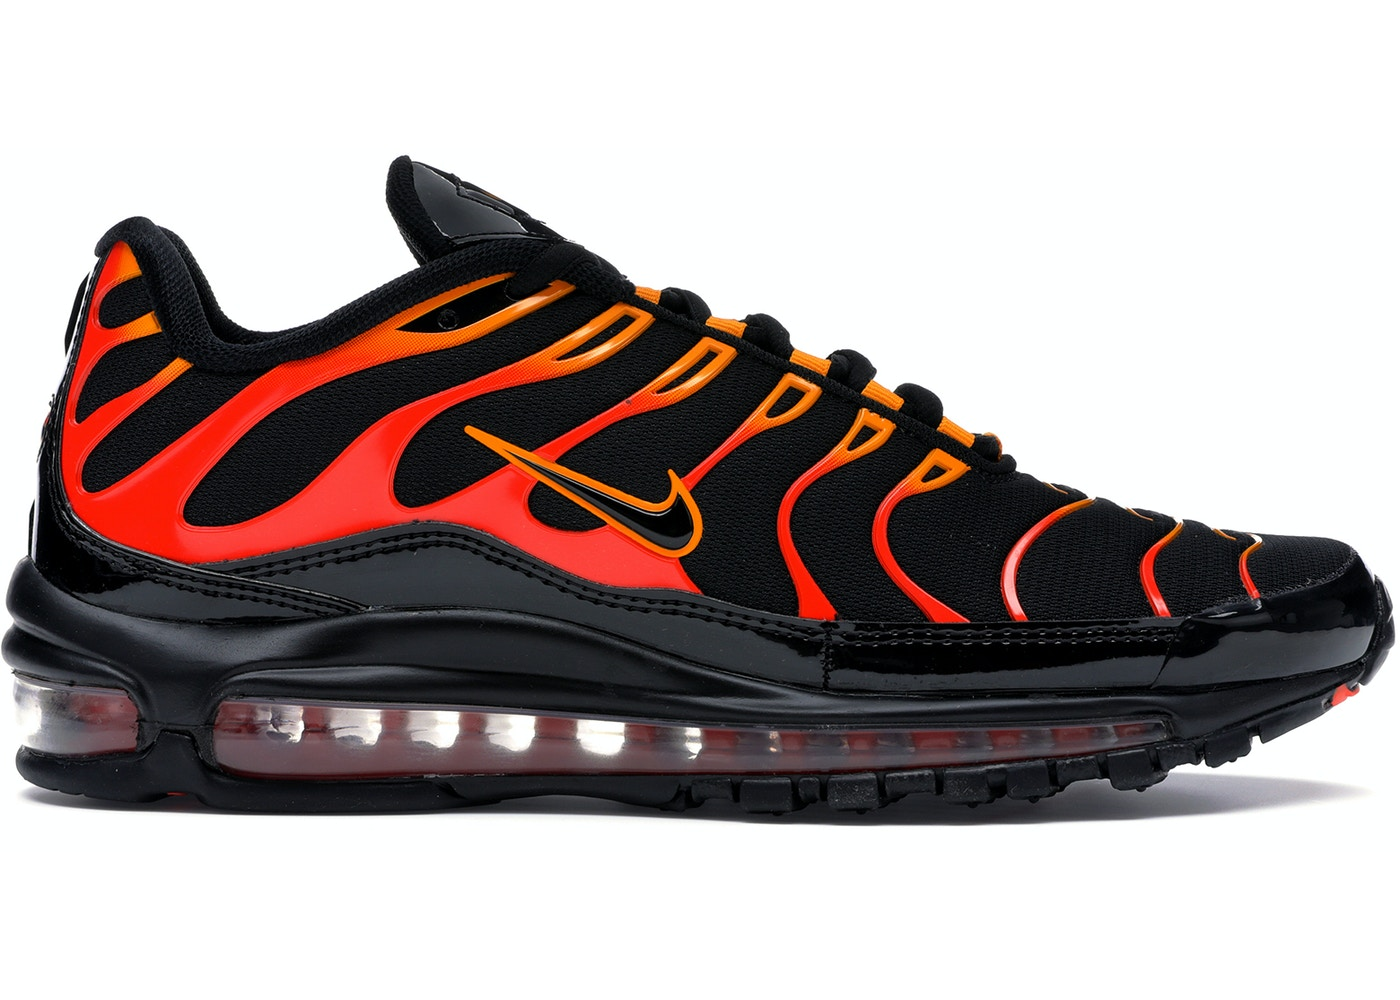 0d0ac0252f Air Max 97 Plus Black Shock Orange - AH8144_-_002